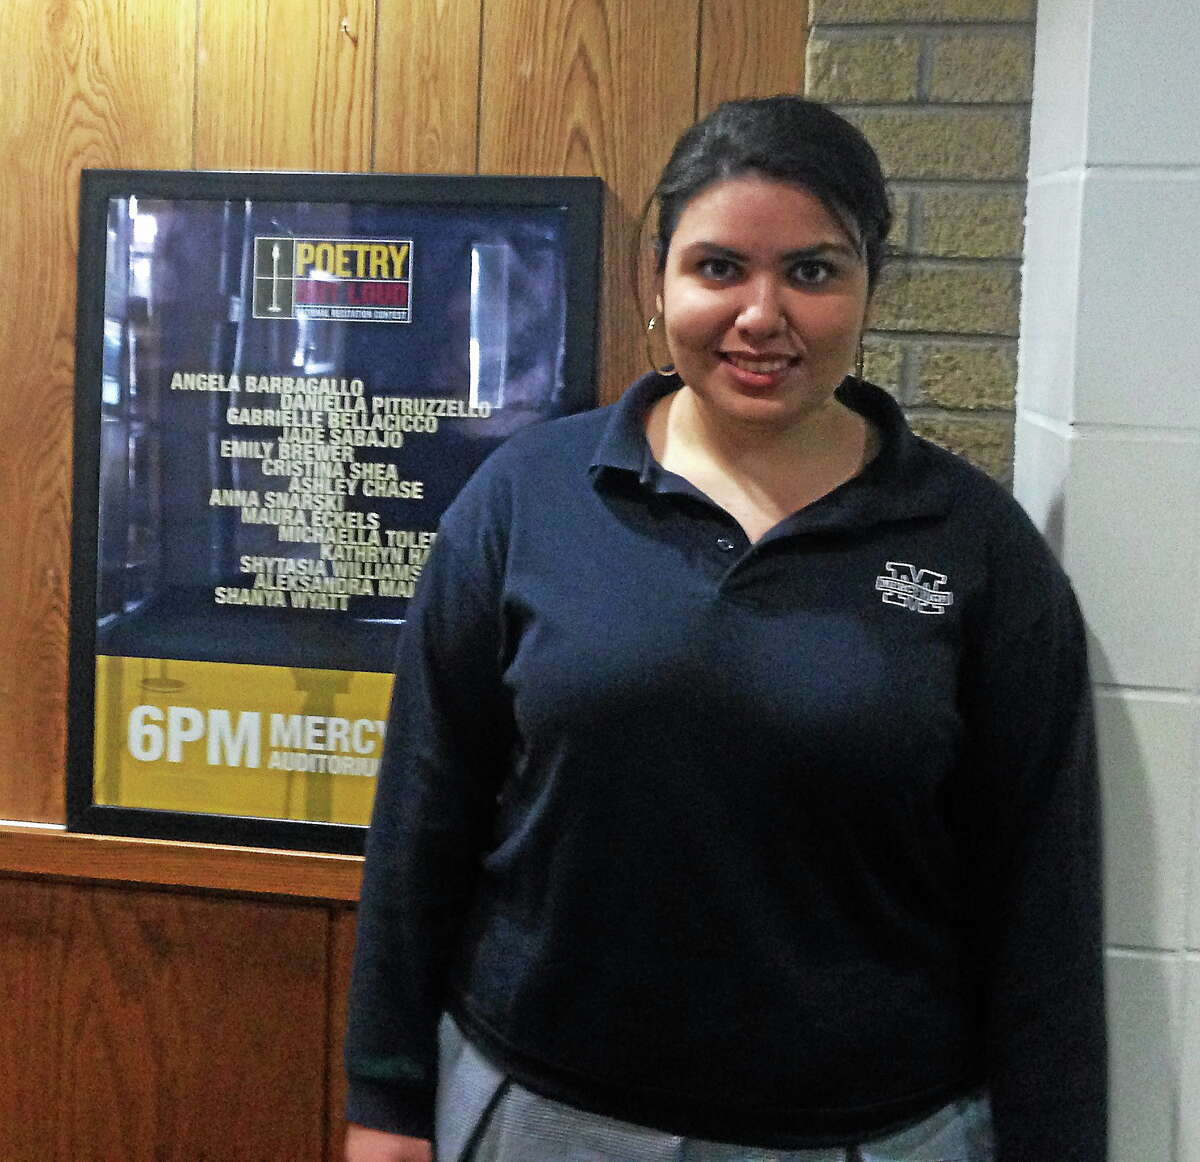 Michaella Toledo, 17, of Middletown, is on her way to nationals in Washington, D.C., after winning states for poetry recitation.